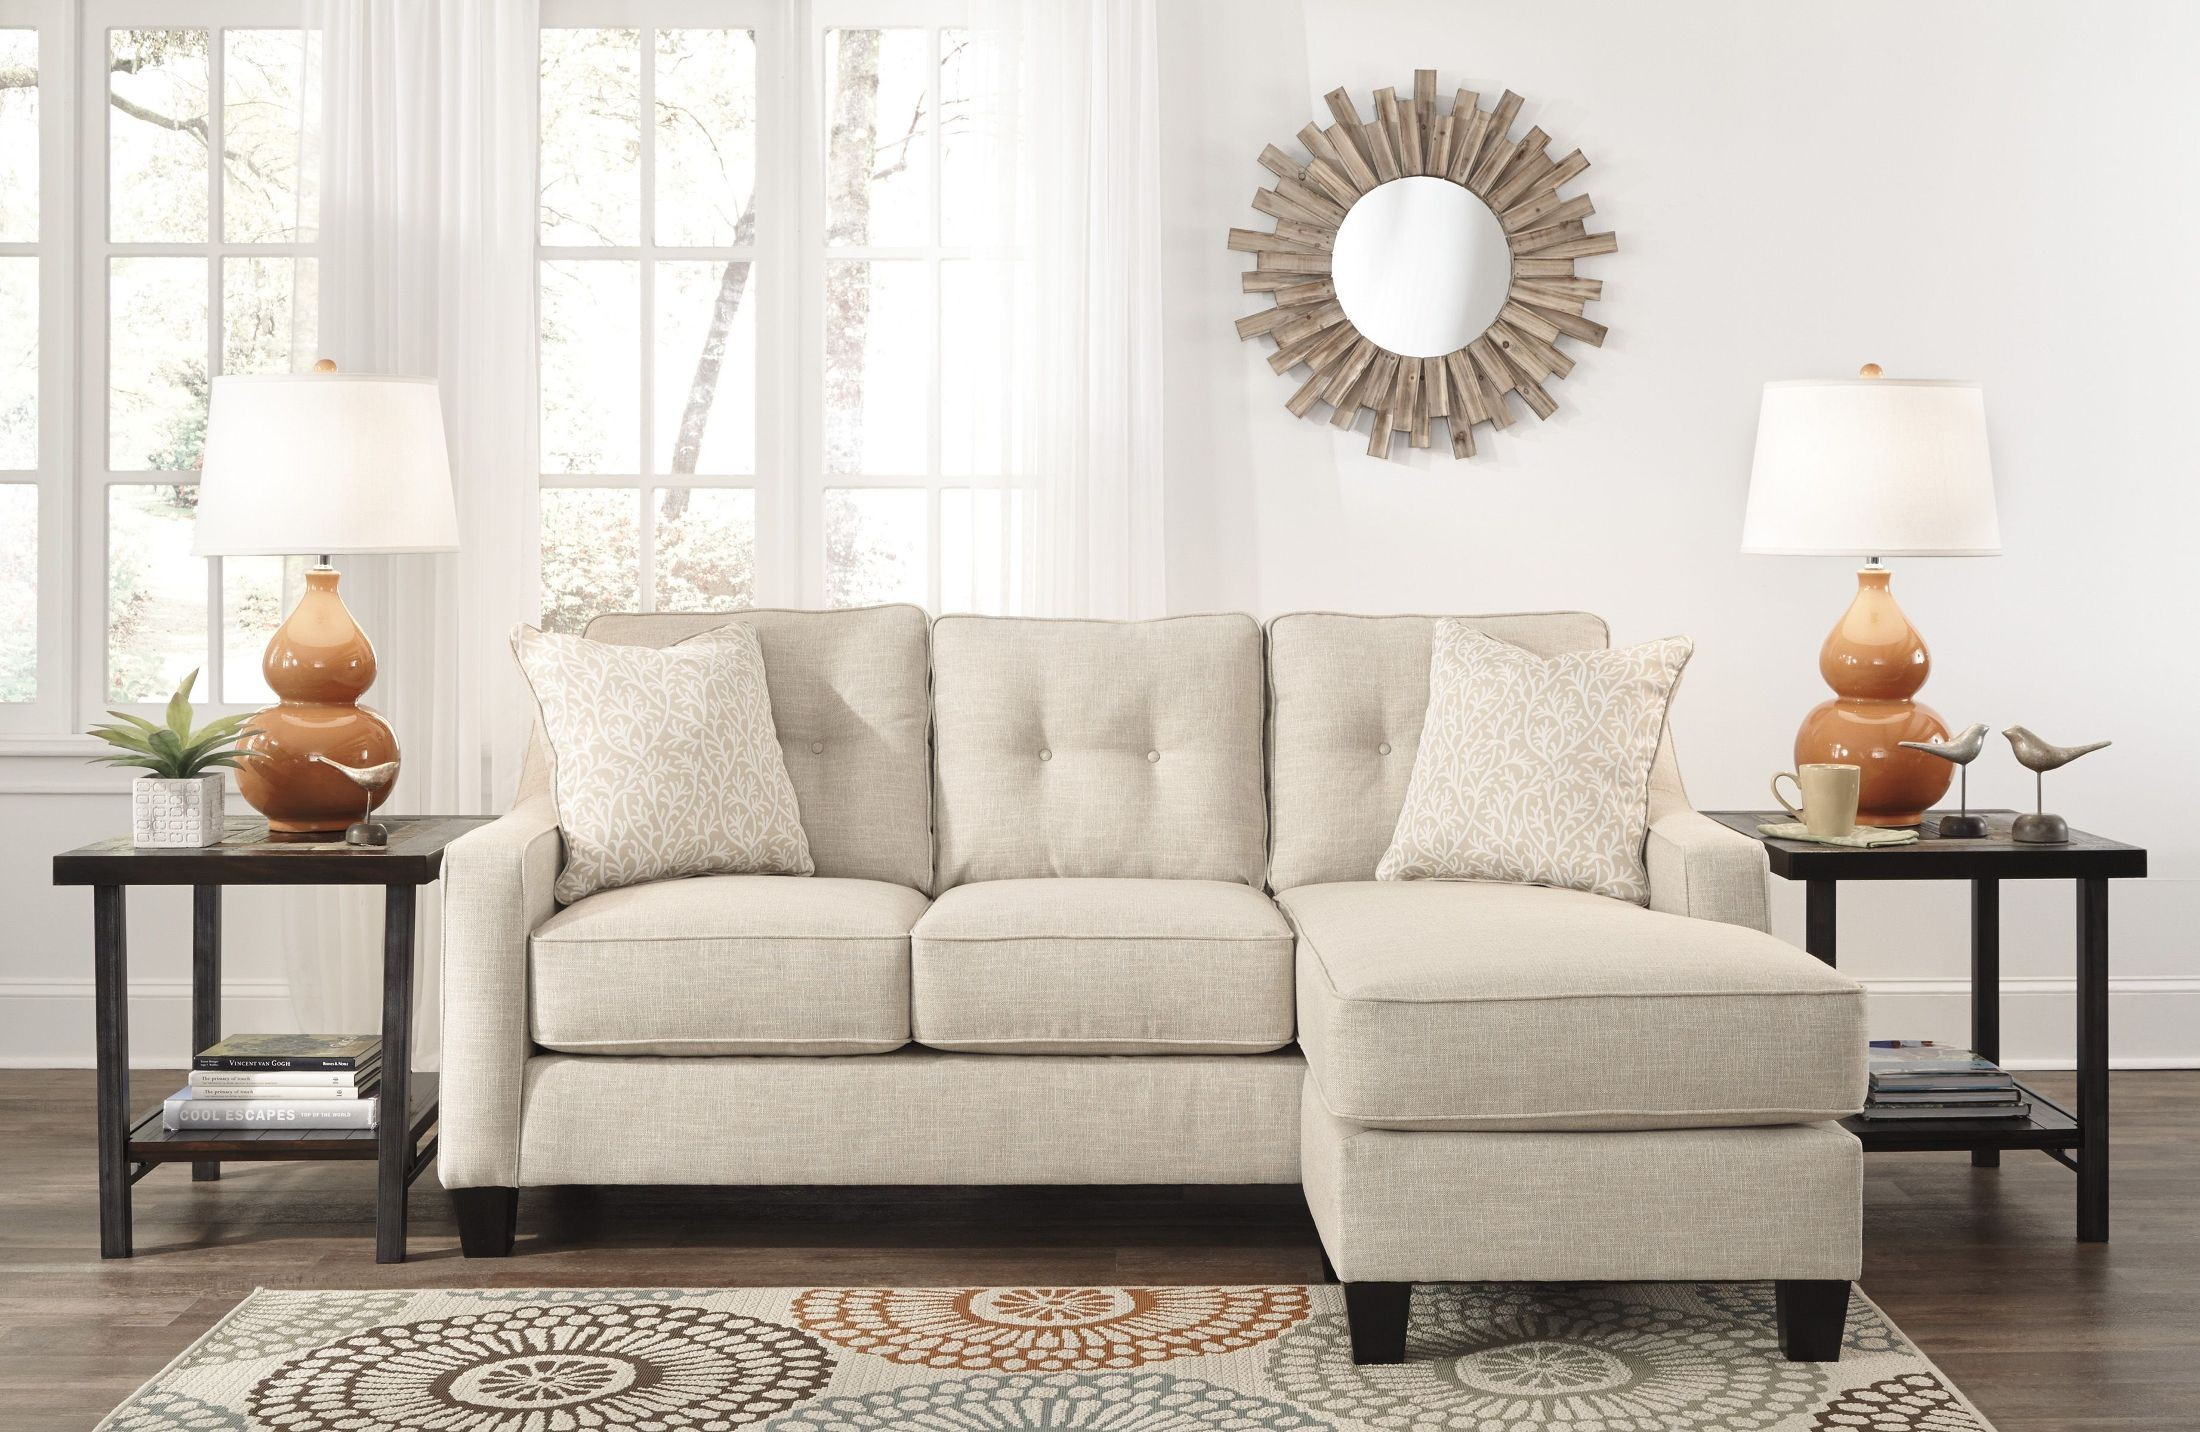 Al Nuvella Sand Sofa Chaise from Ashley